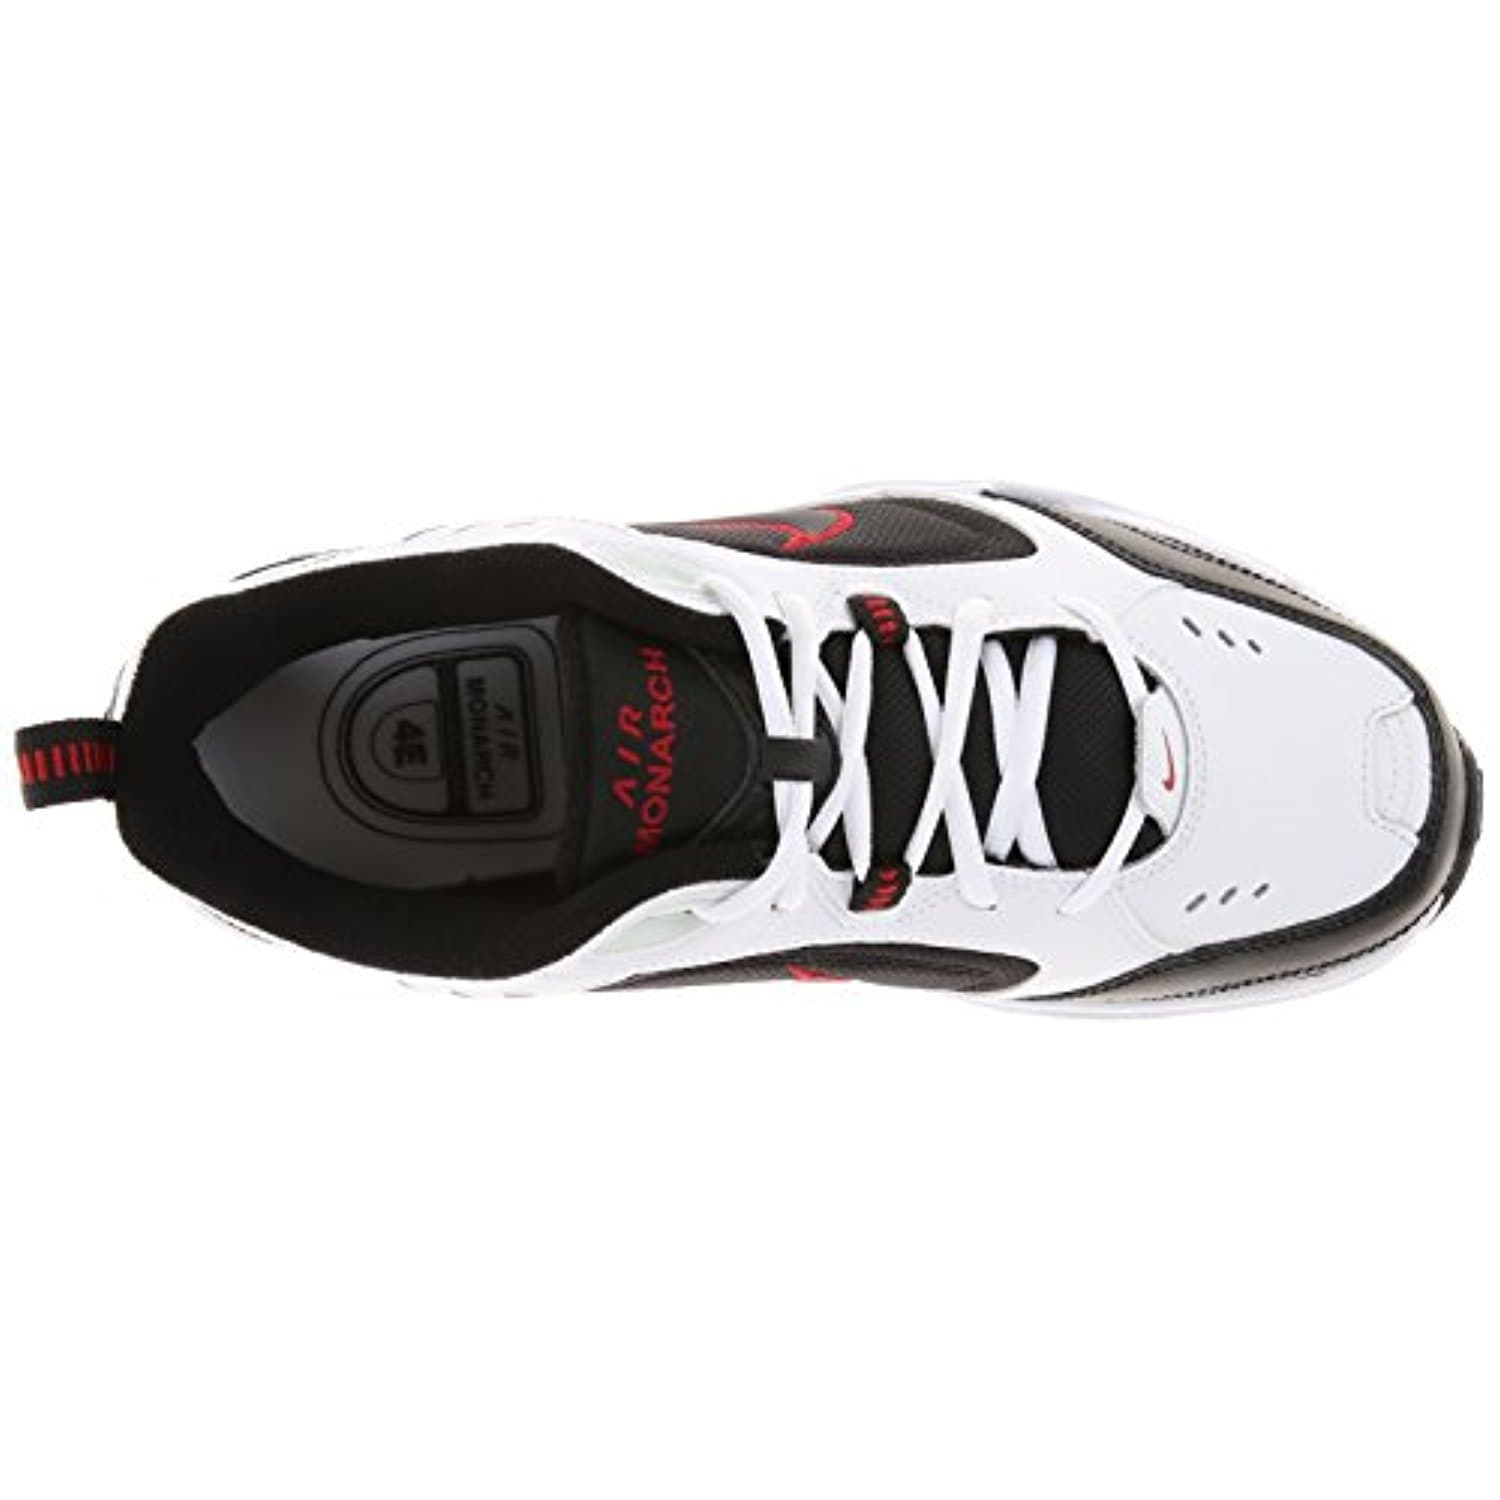 Nike Air Monarch IV Training Shoe (4E) - White/Black/Varsity Red - white /  black / varsity red - Free Shipping Today - Overstock.com - 24412797